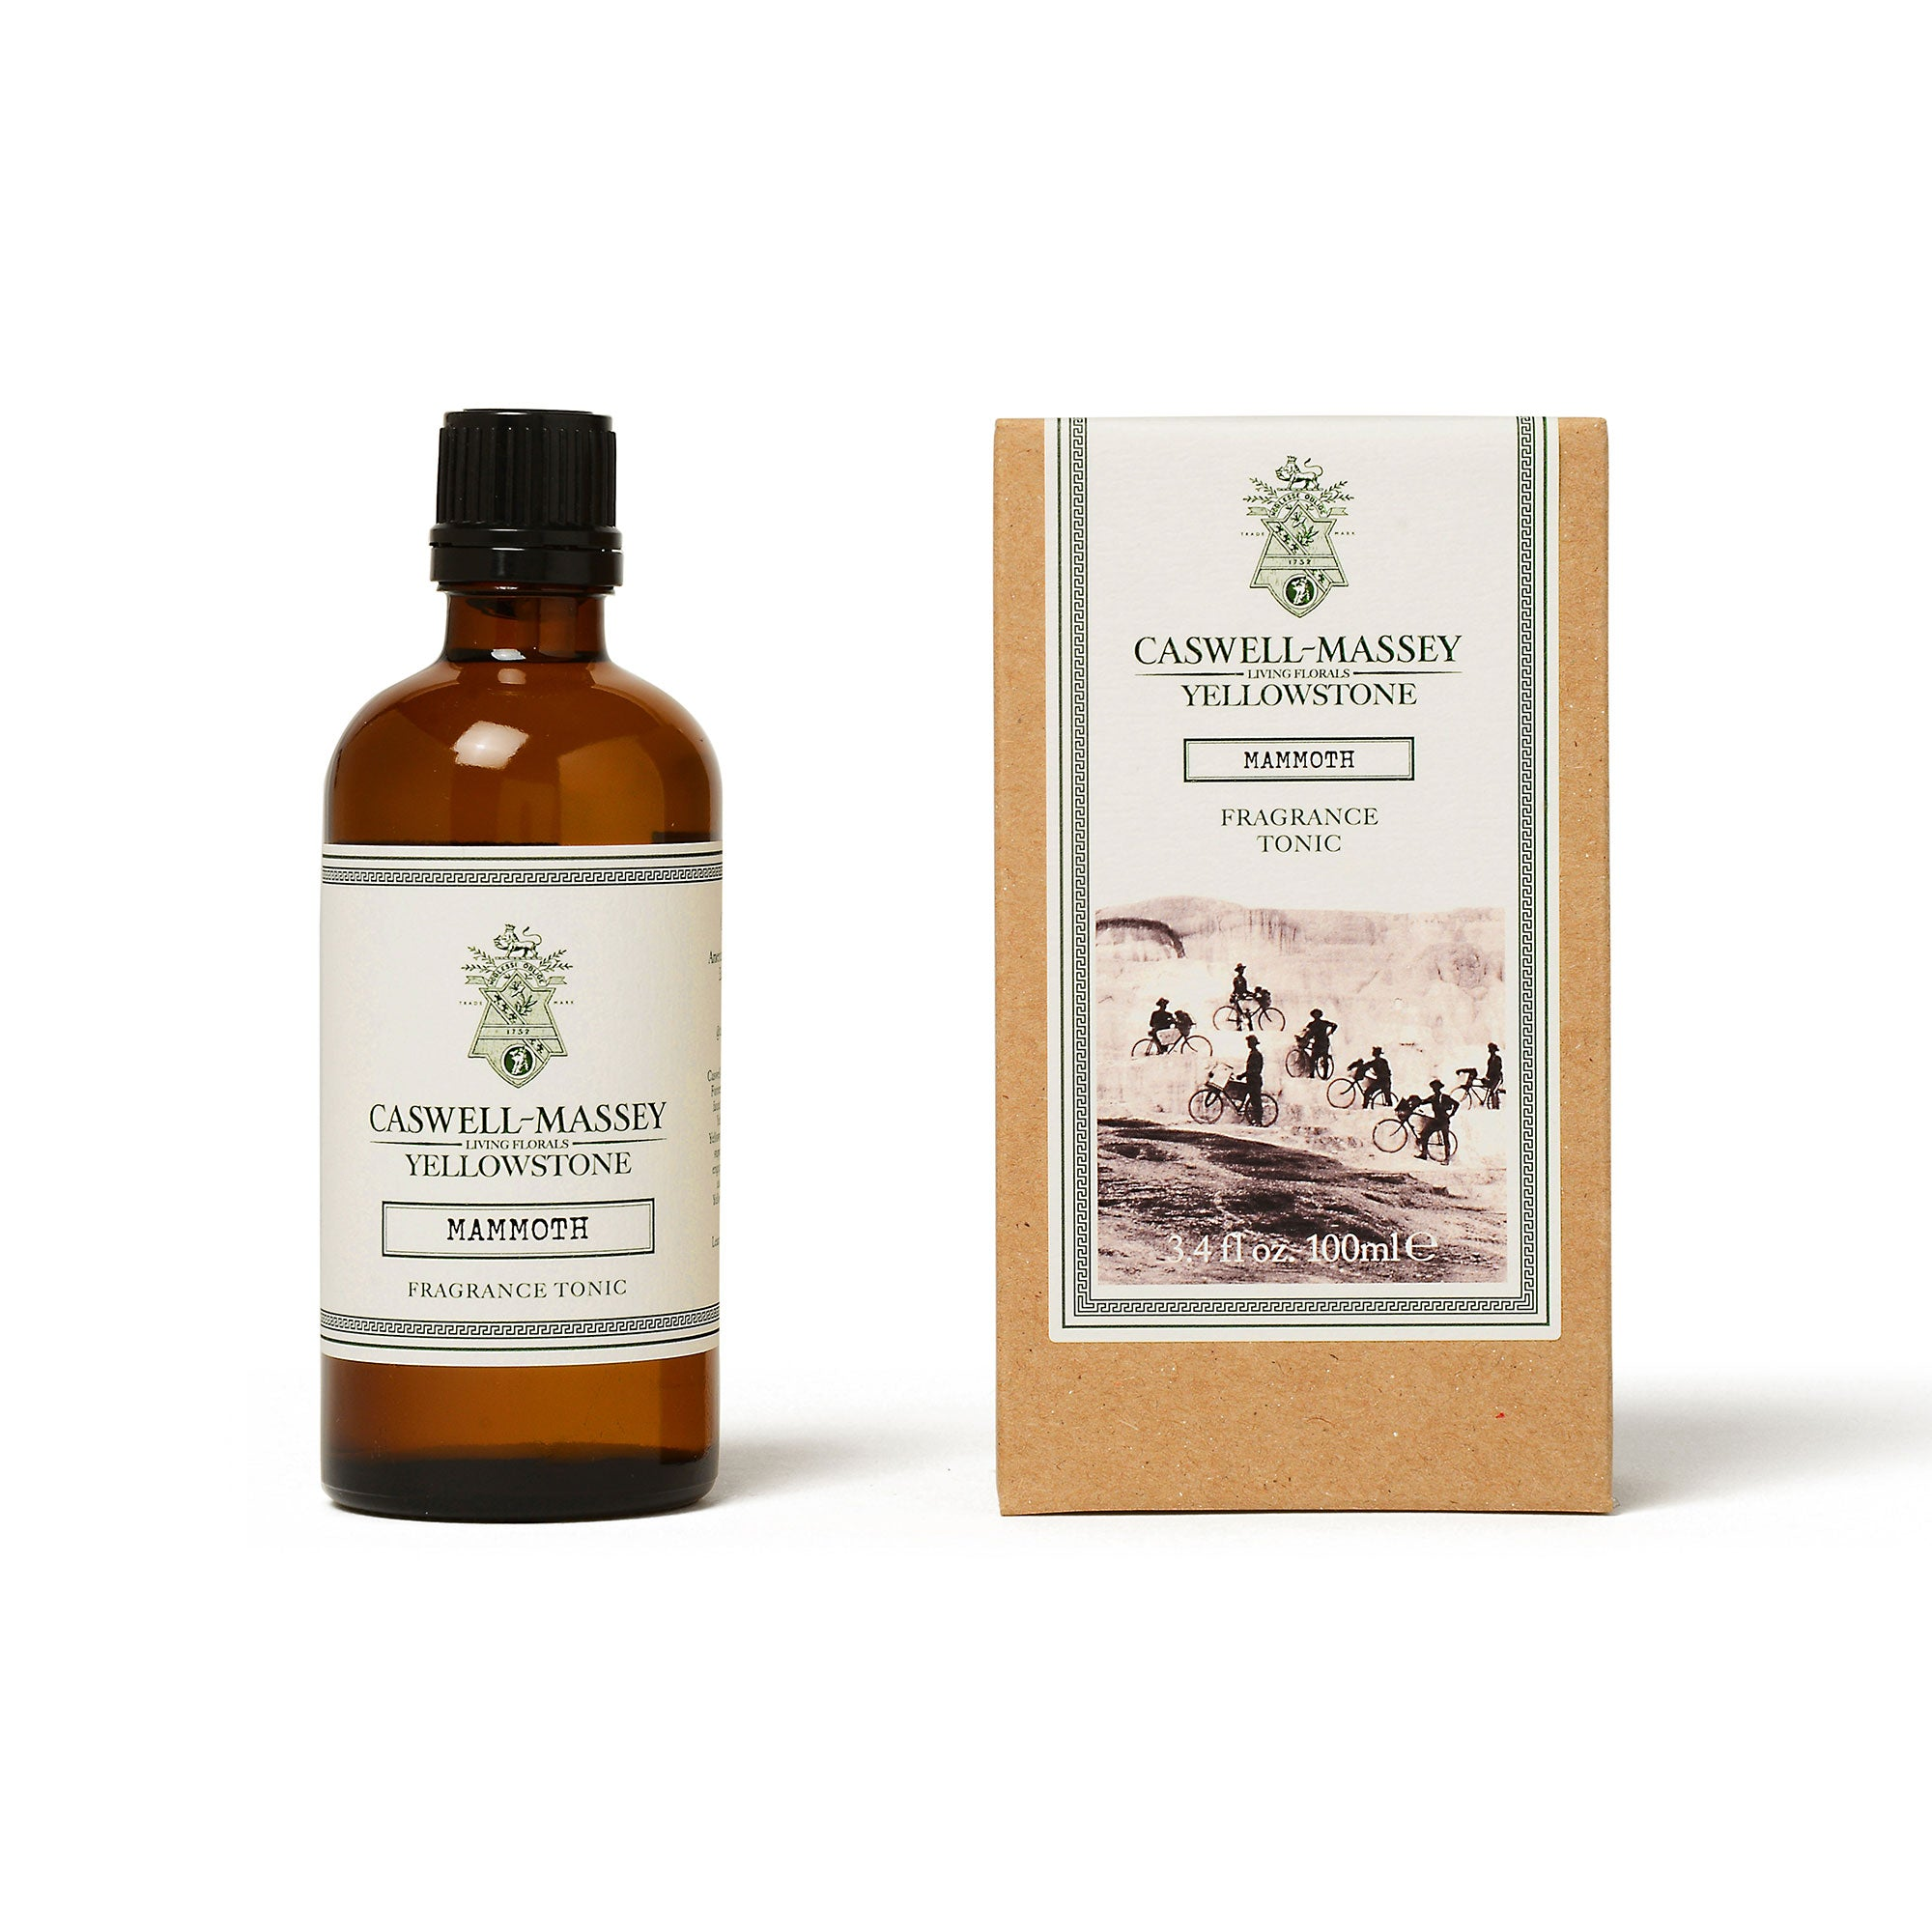 Yellowstone Mammoth - 100ml Fragrance Tonic